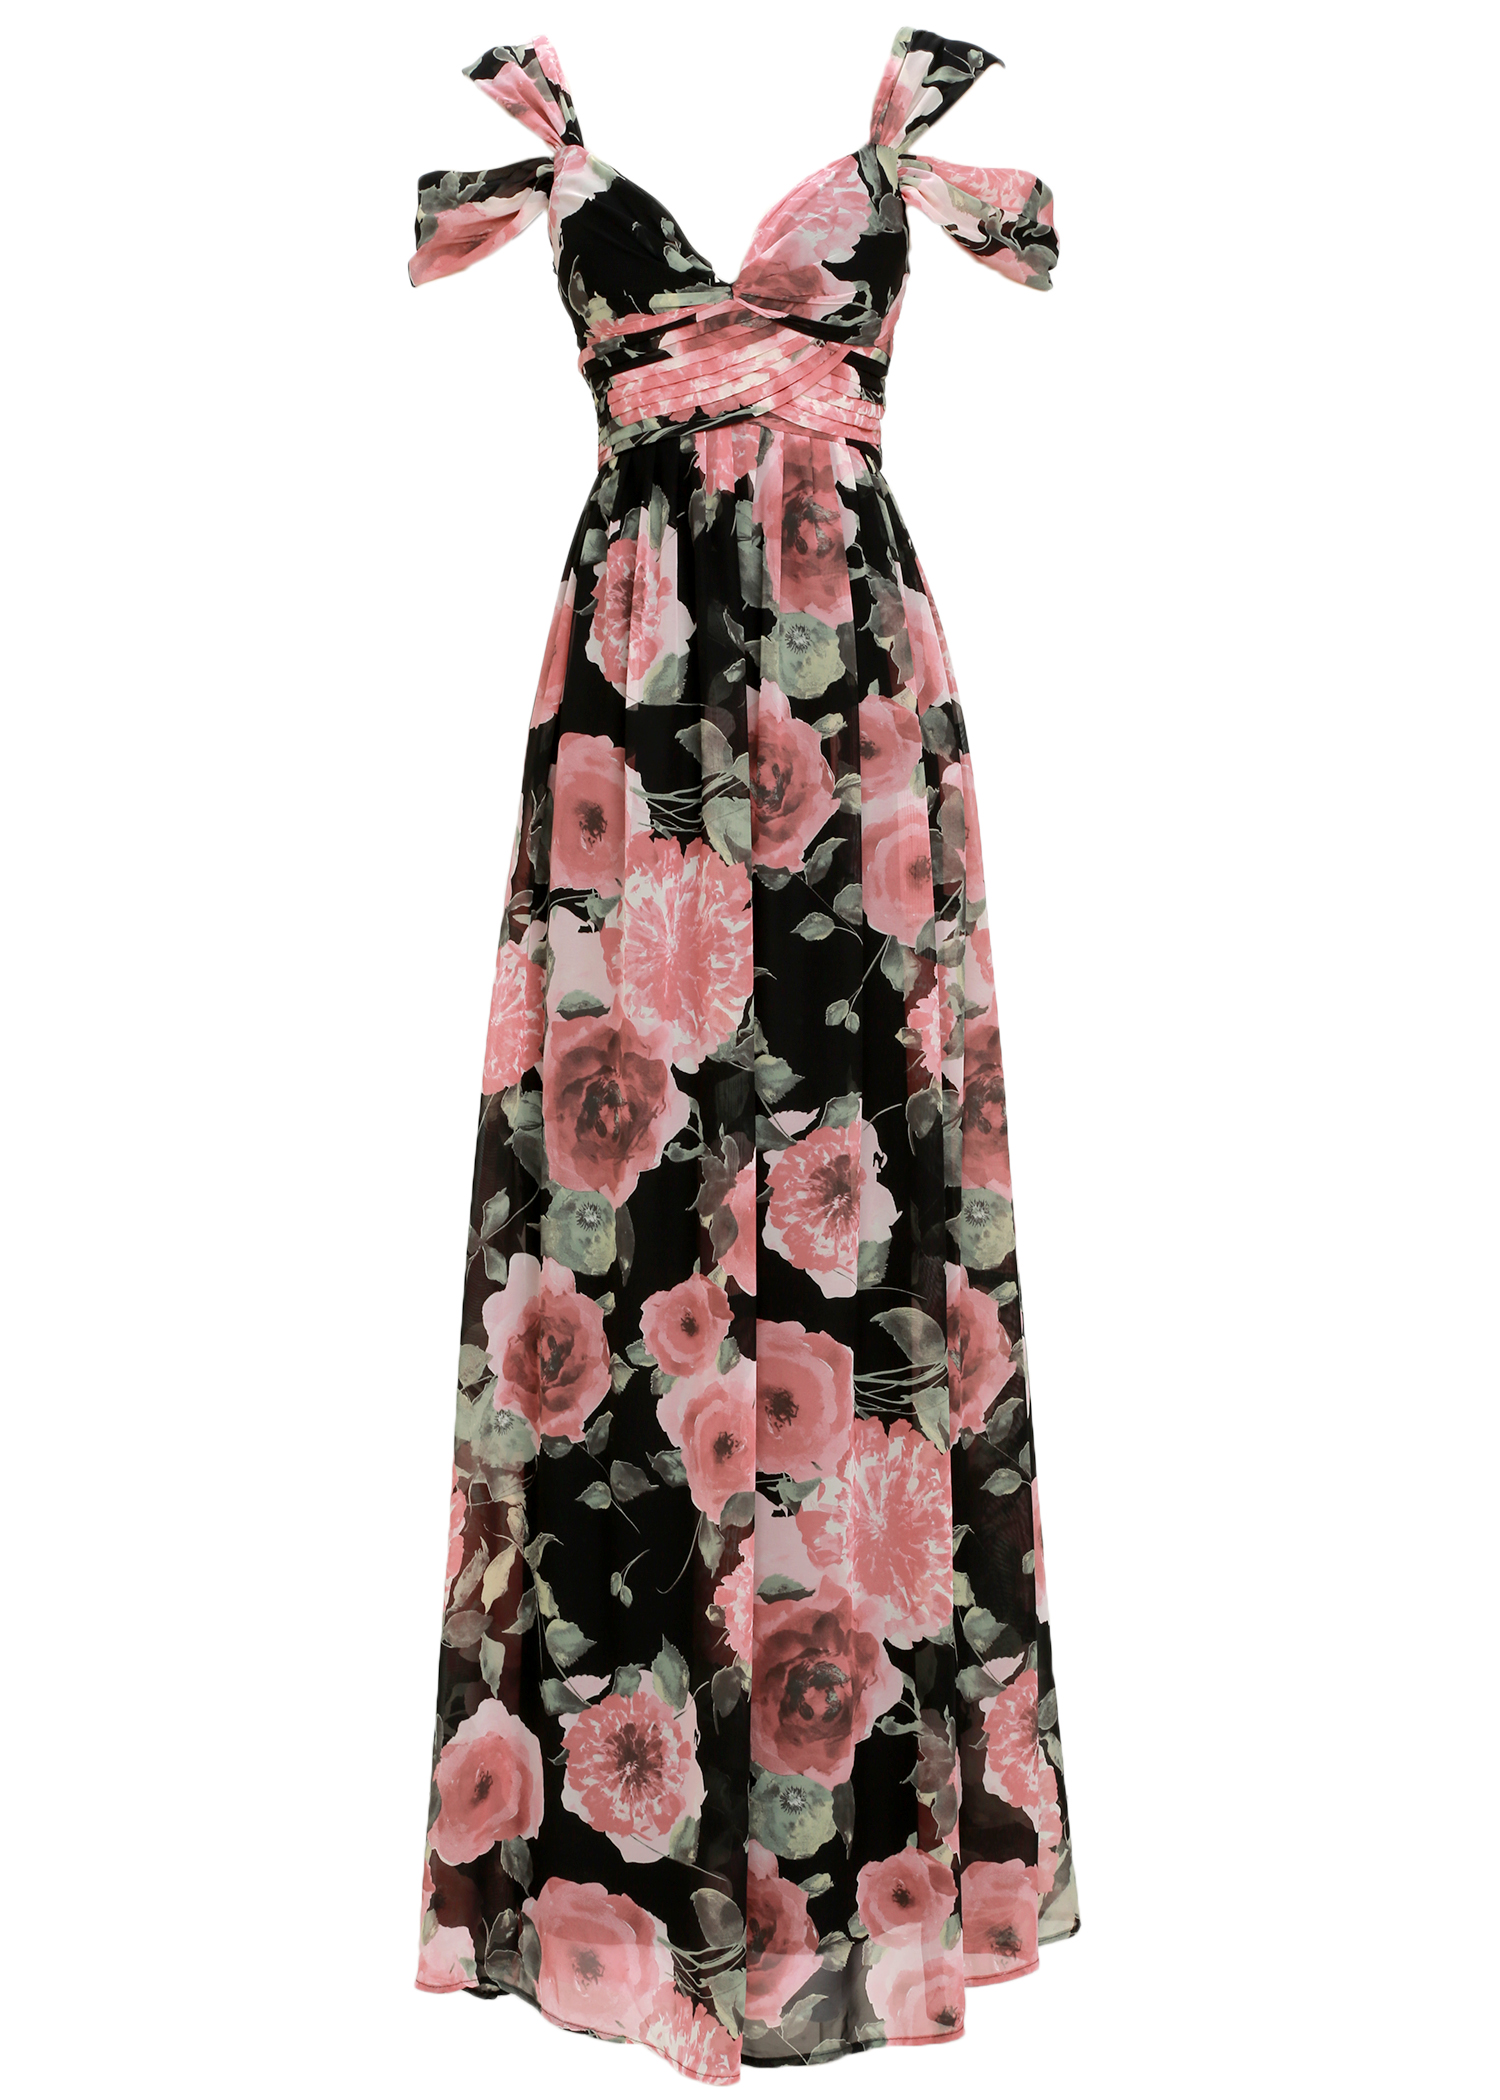 lulus - GIVE ME AMORE BLACK AND PINK FLORAL PRINT MAXI DRESS